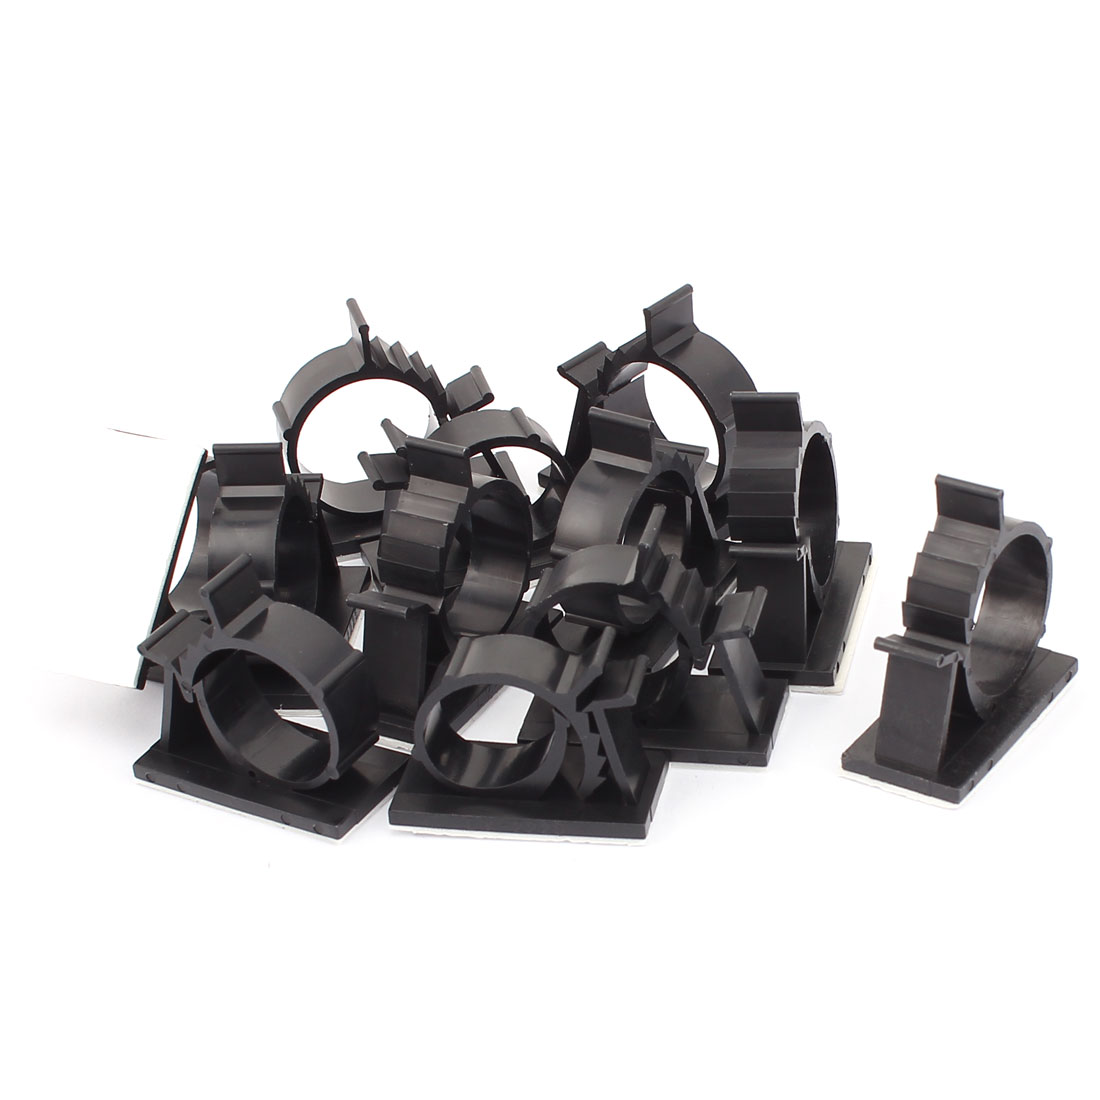 12 Pcs Self-adhesive Cord Cable Tie Clamp Sticker Clip Holder Black 25.4mm